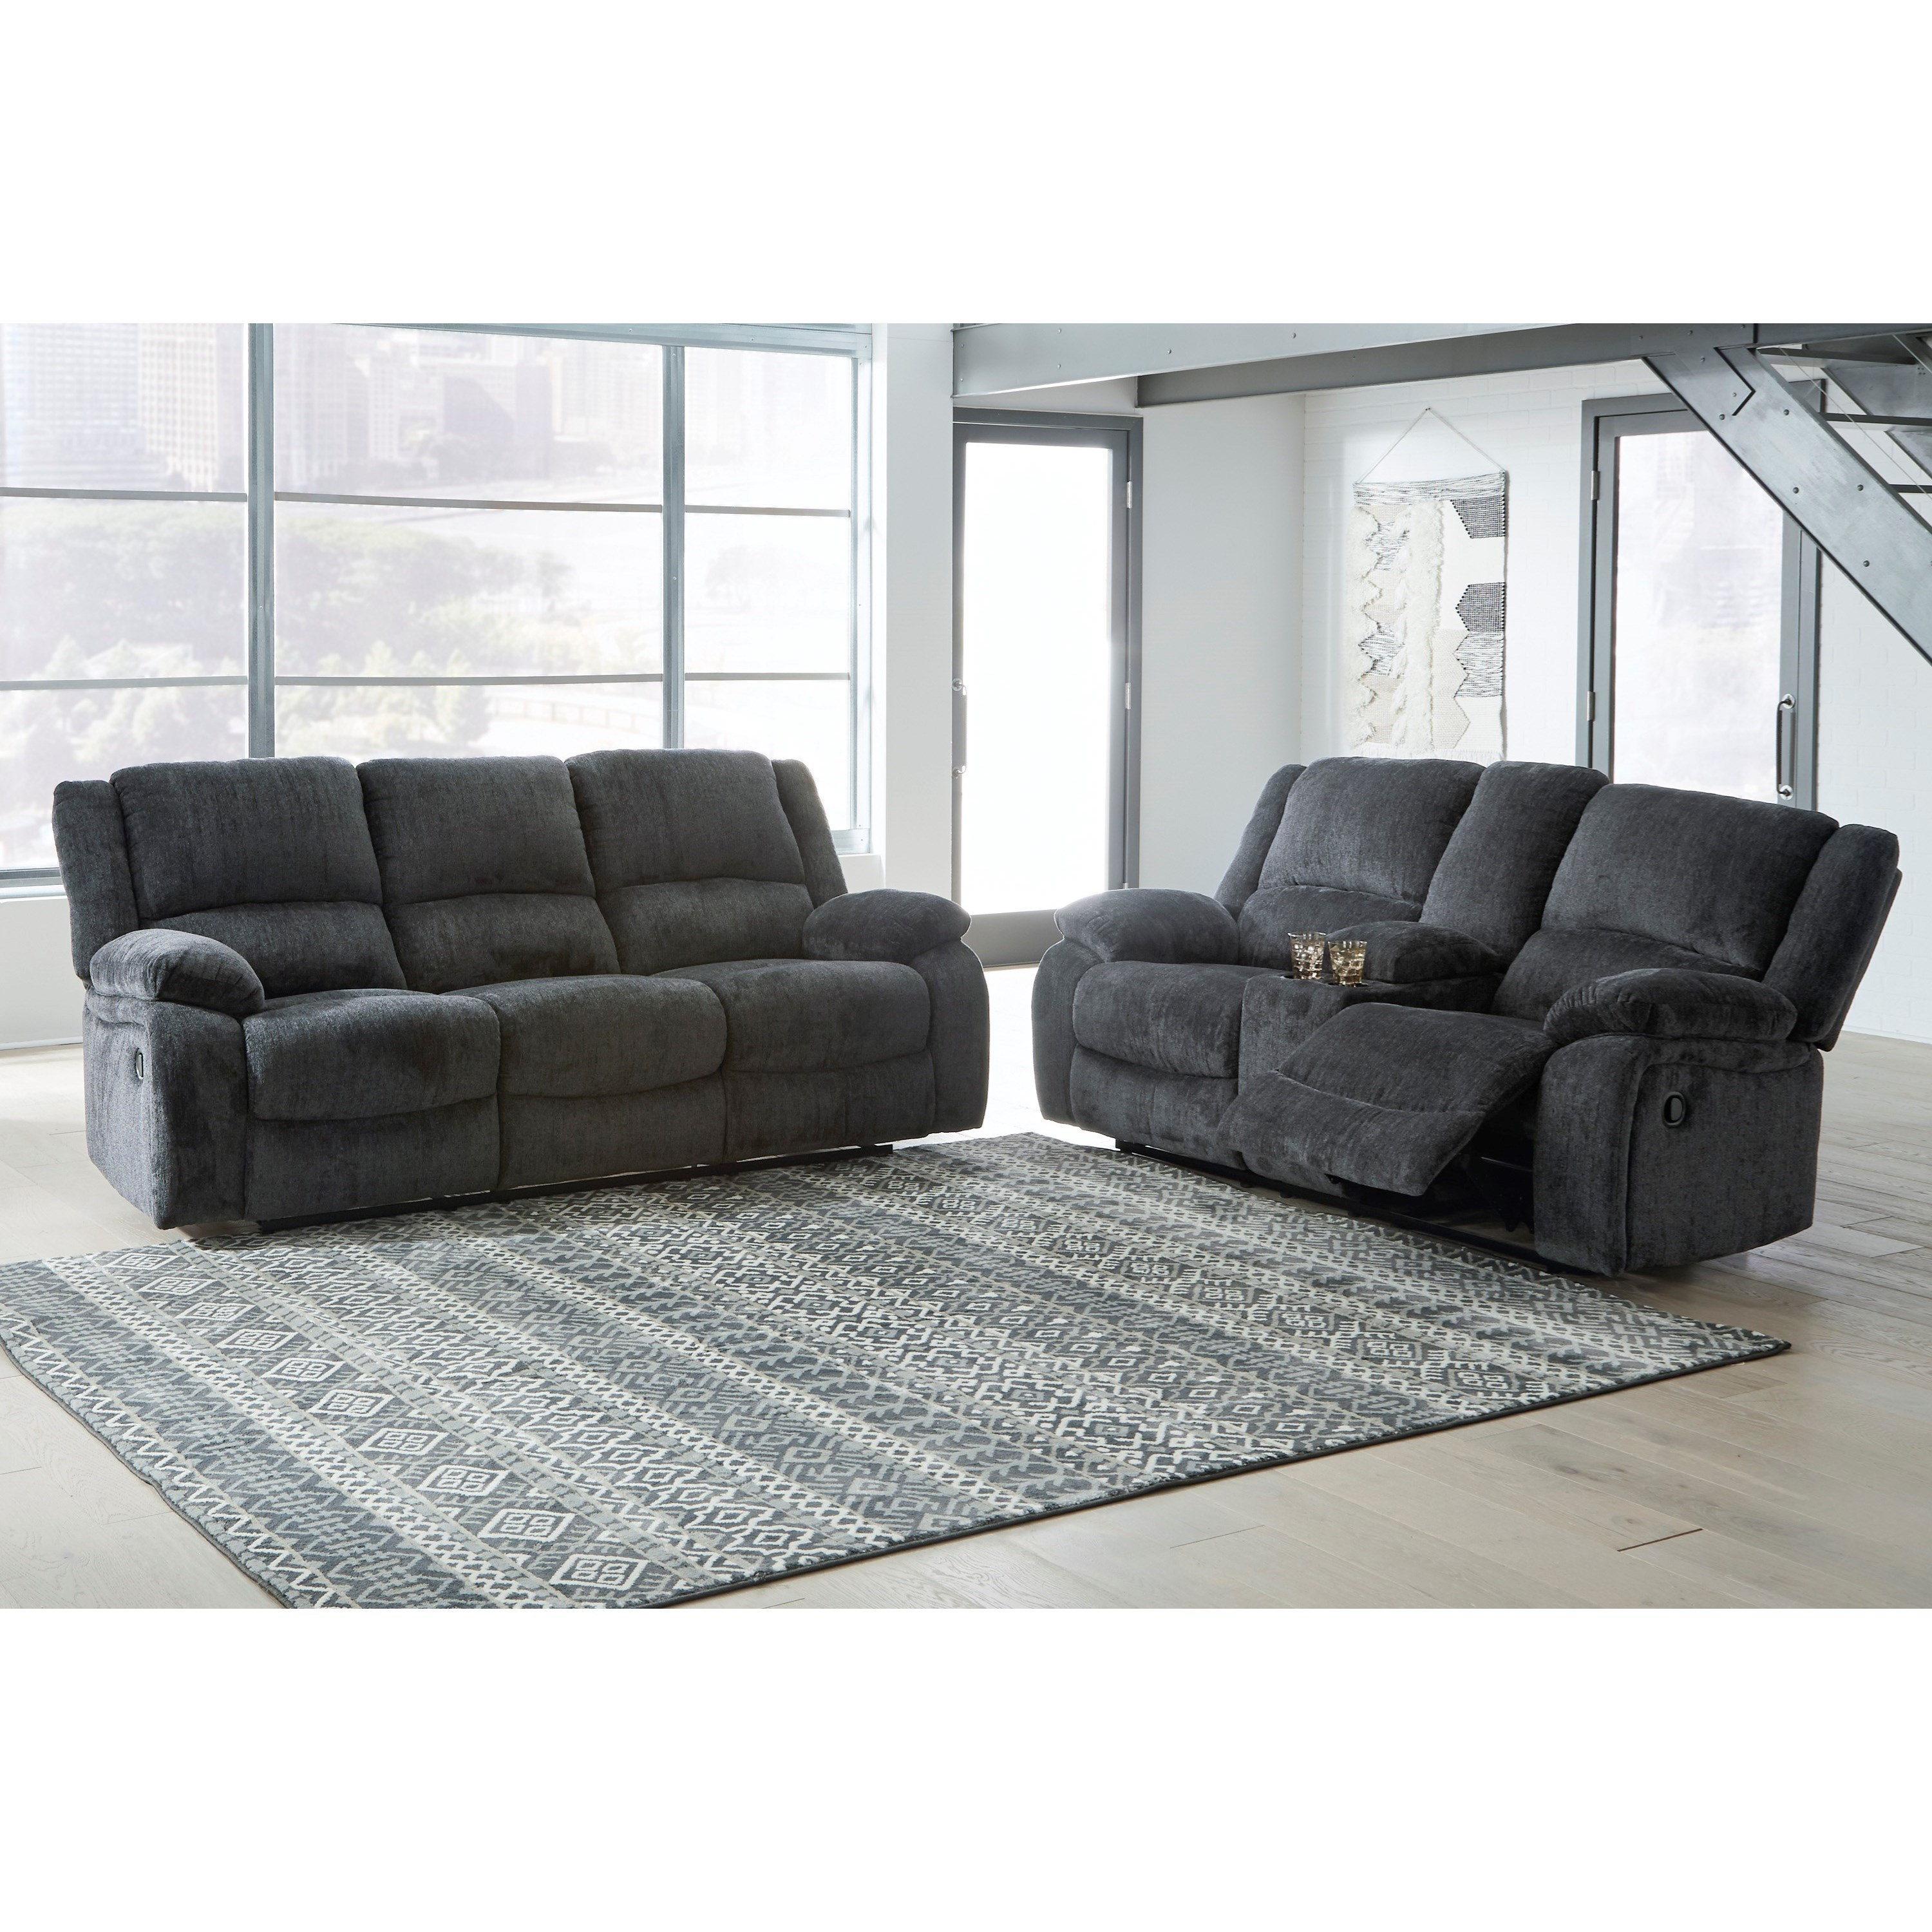 Draycoll Reclining Living Room Group by Signature Design by Ashley at Zak's Home Outlet